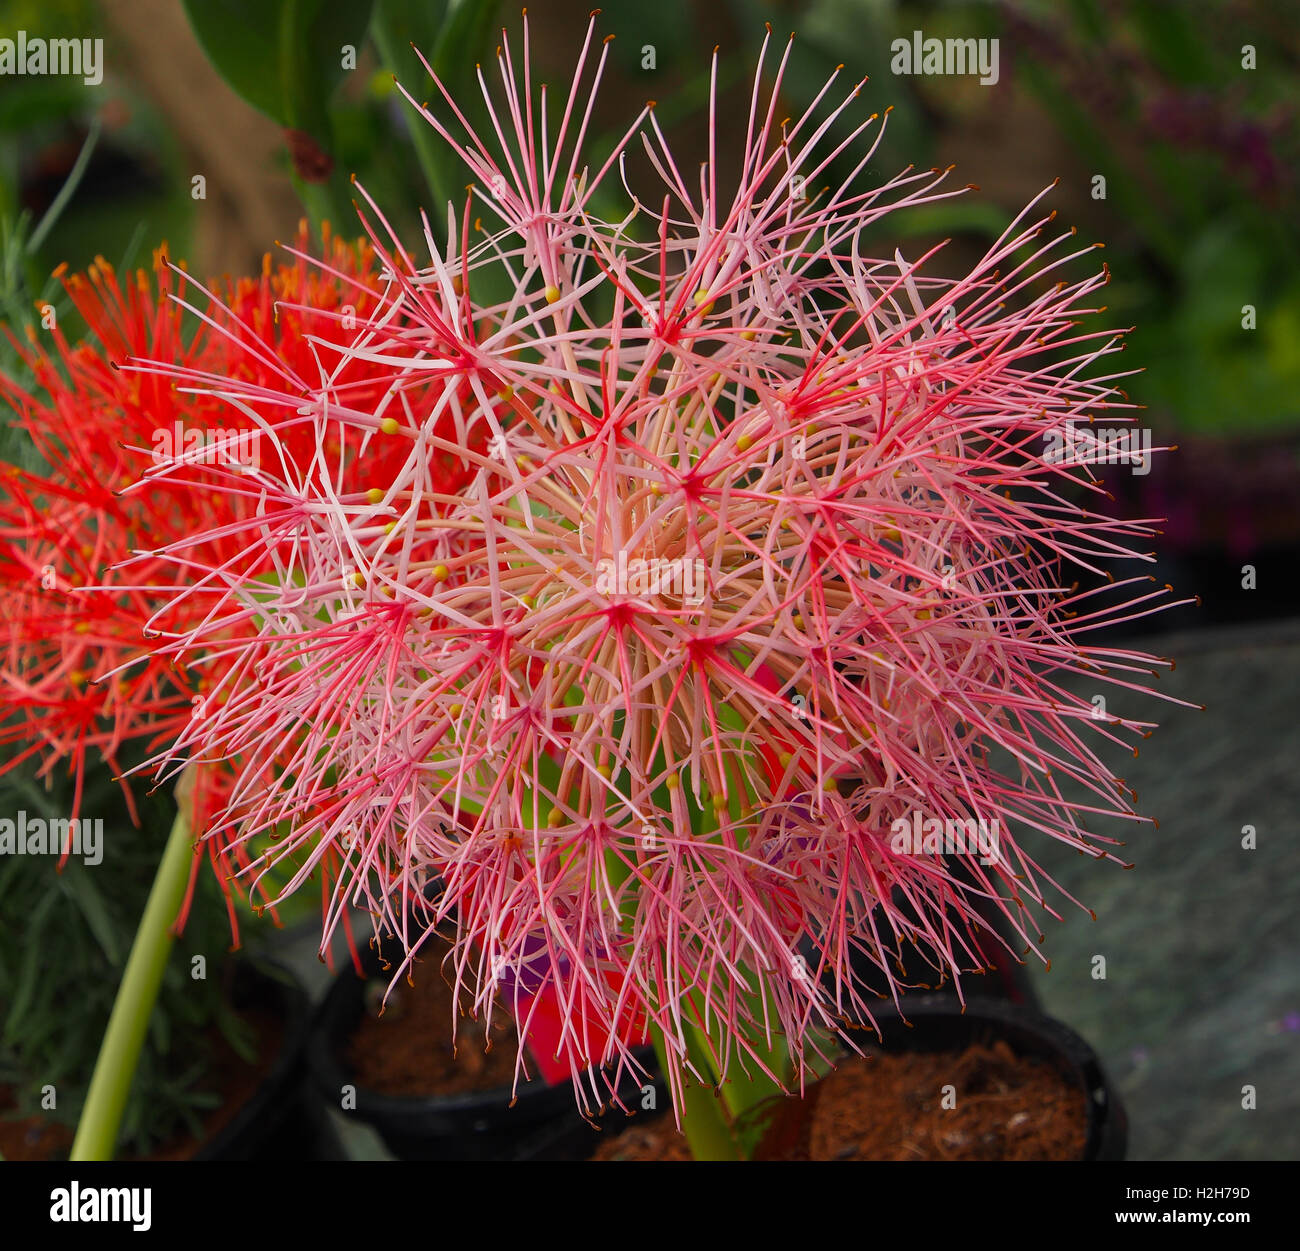 Close up macro shot of the flower head of a blood lily (Haemanthus multiflorus) also known as the blood lily. - Stock Image